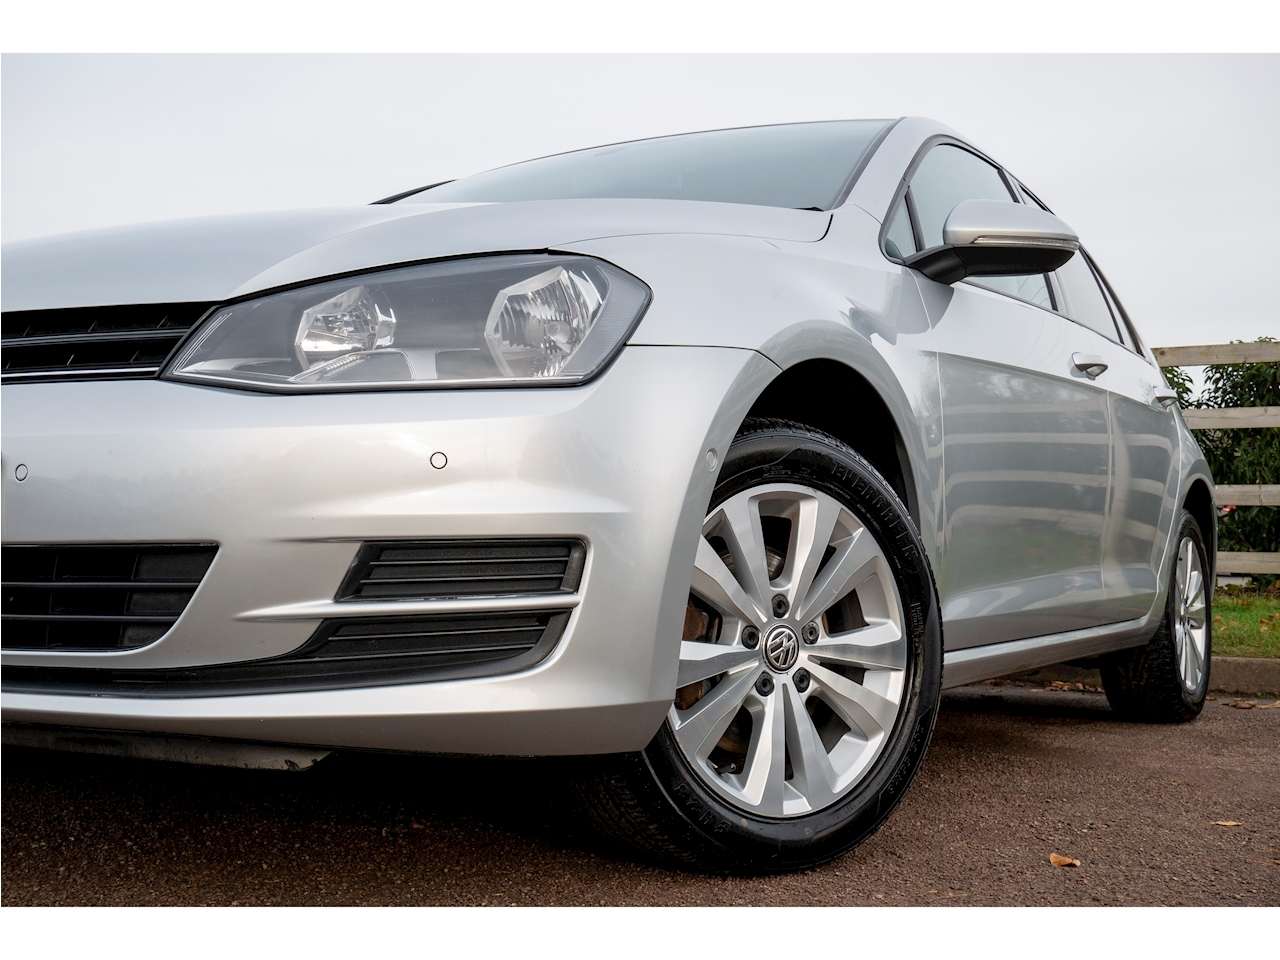 Volkswagen Golf Se Tsi Bluemotion Technology Hatchback 1.4 Manual Petrol